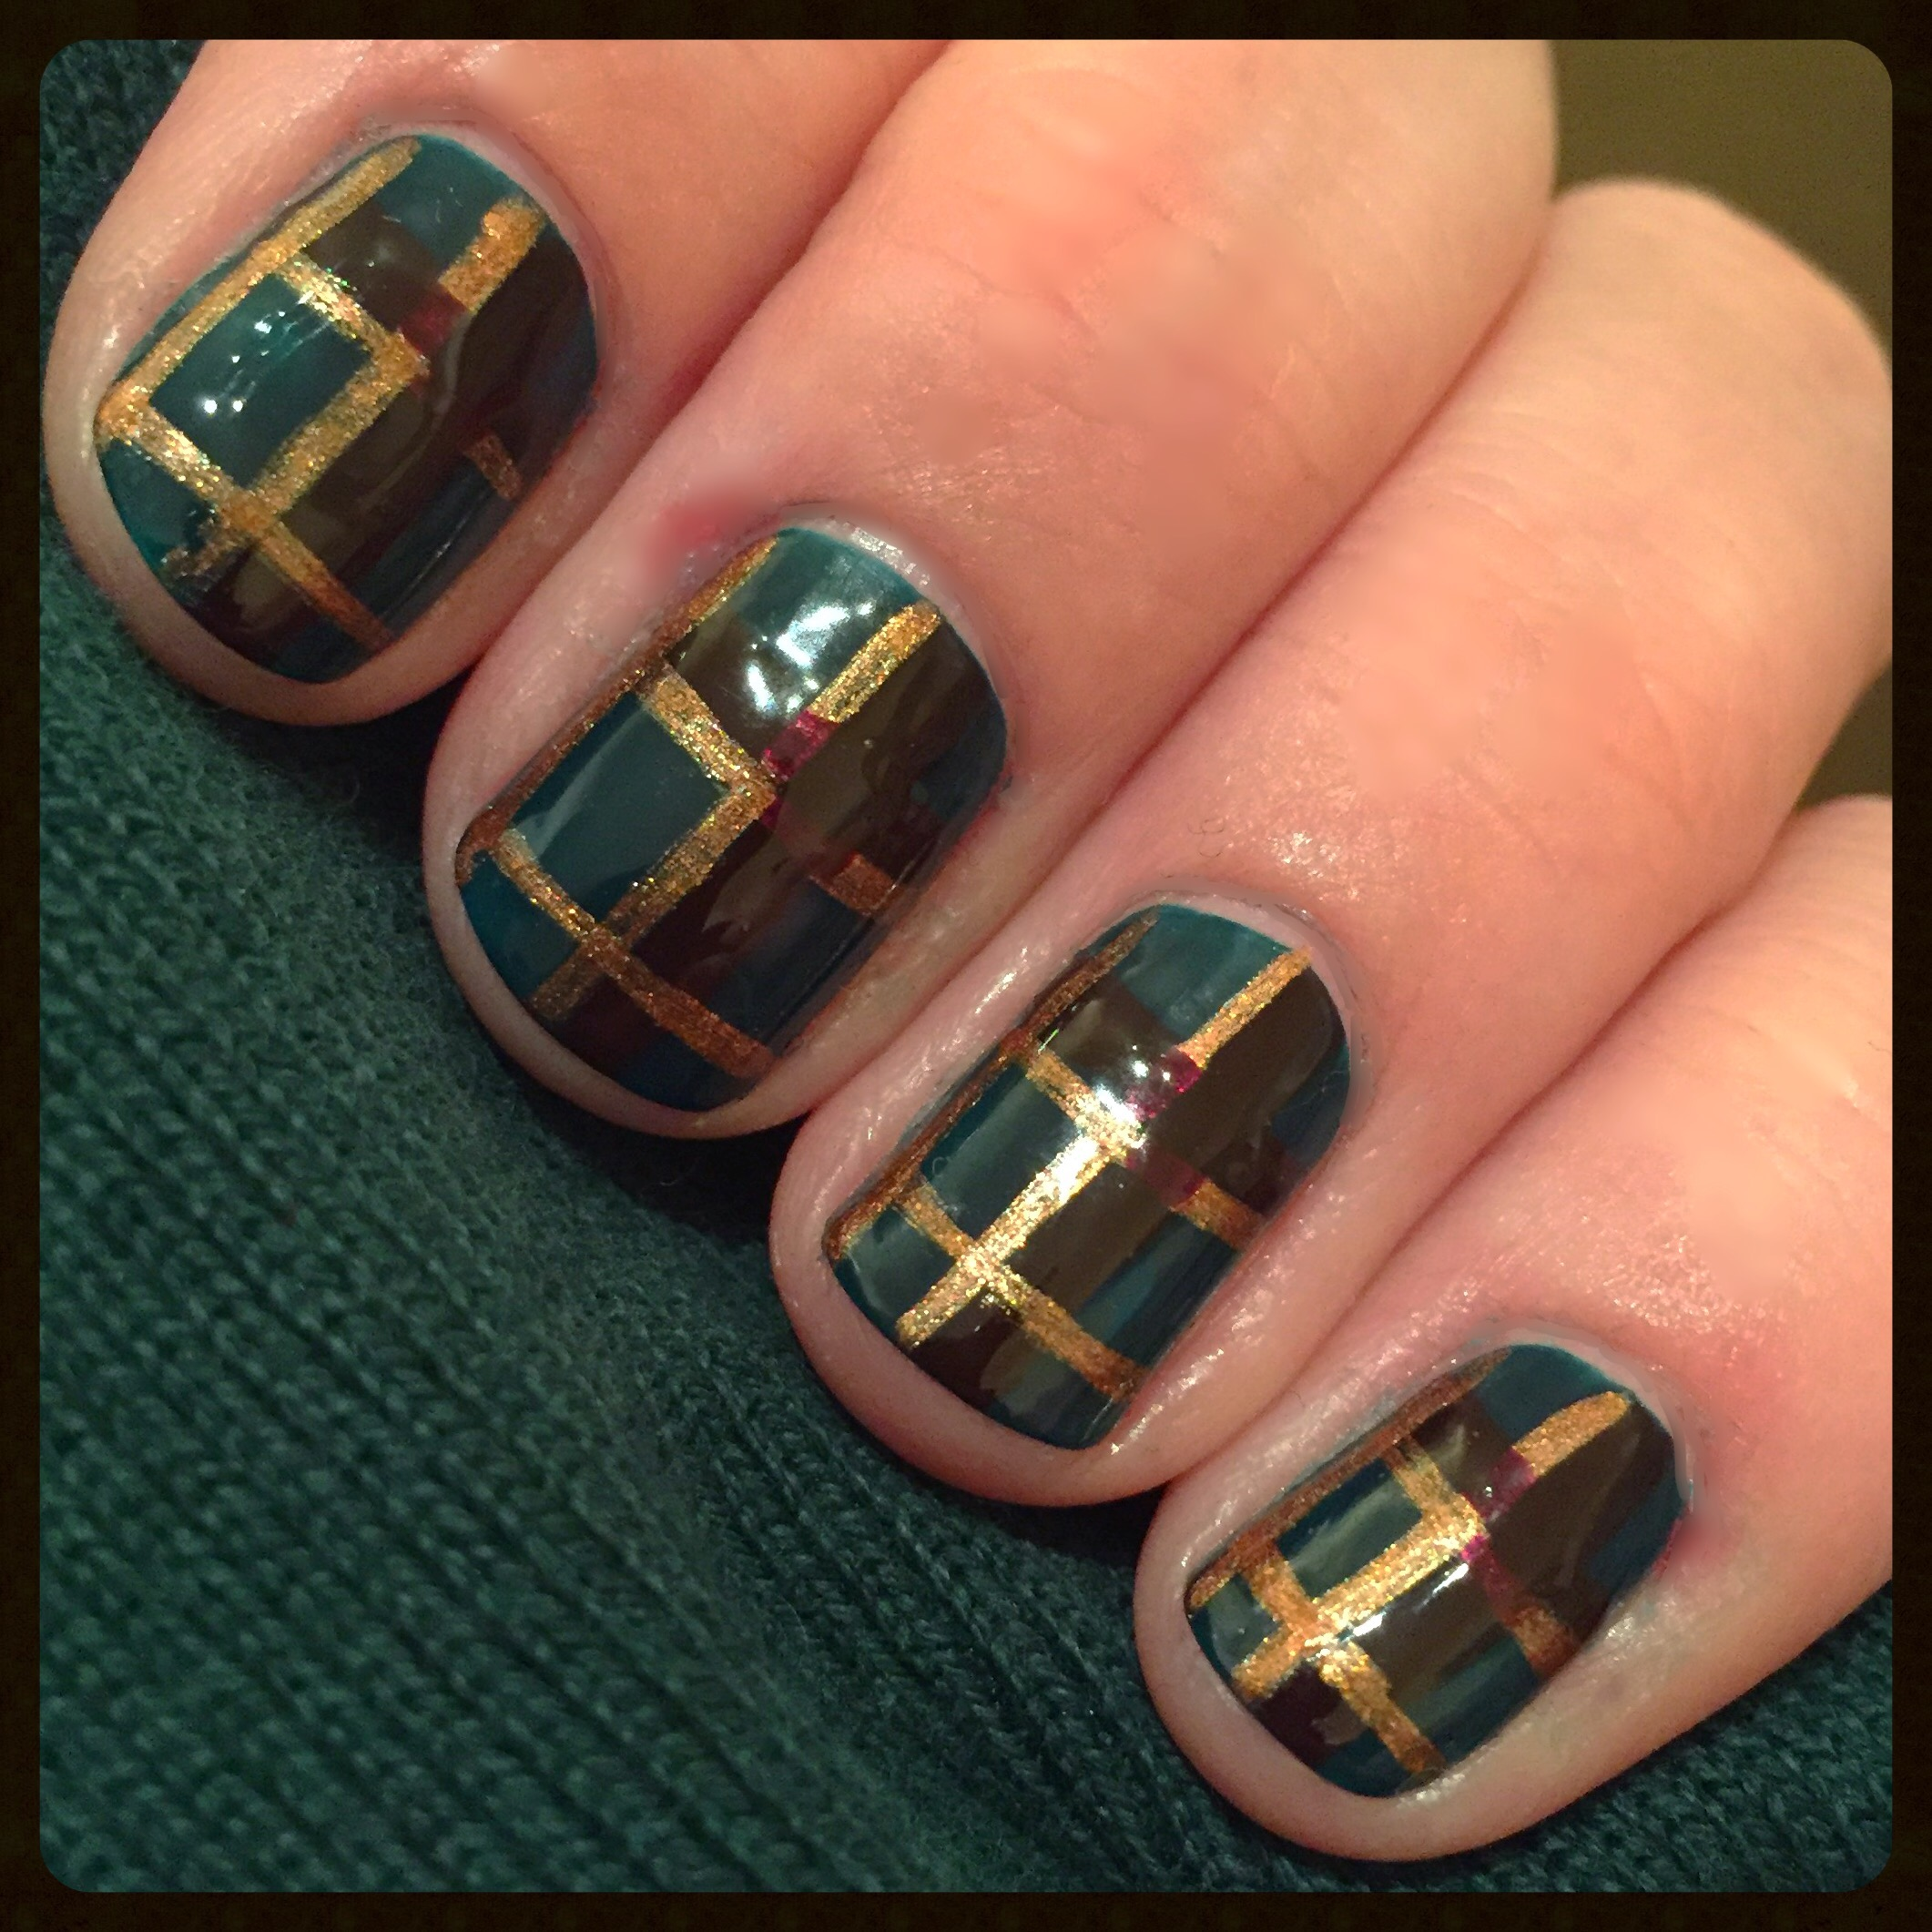 Nail art beginnersnailarts blog page 7 step 6 clean up around your nails apply topcoat and youre done prinsesfo Gallery